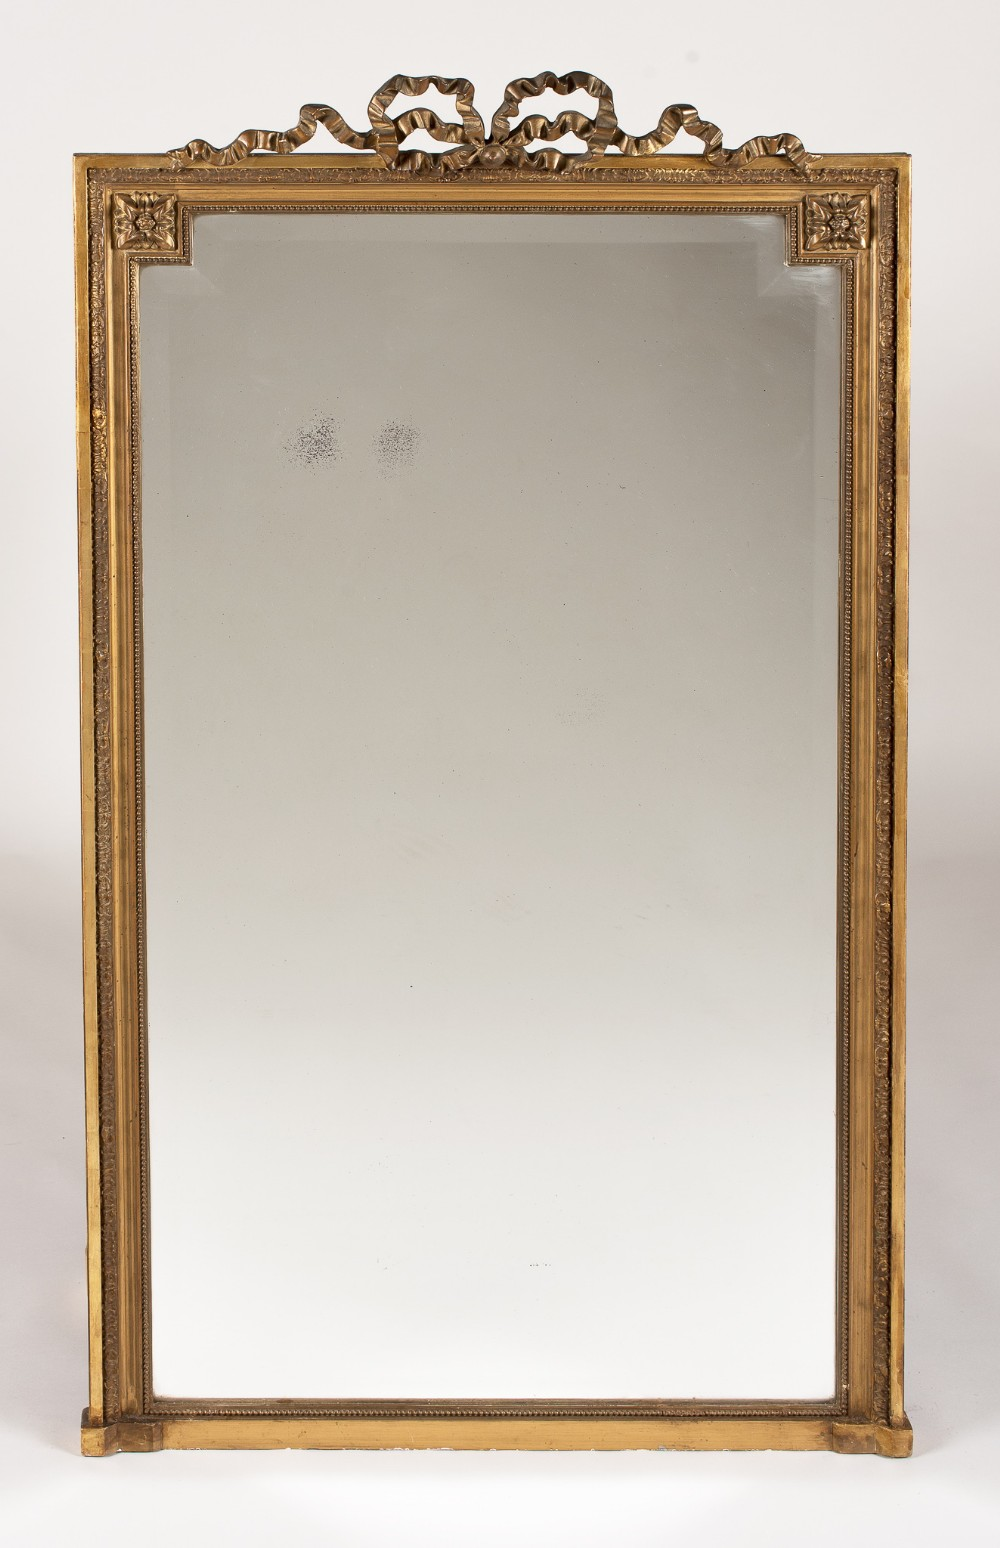 19th century large french gilt overmantle mirror with its original bevelled glass